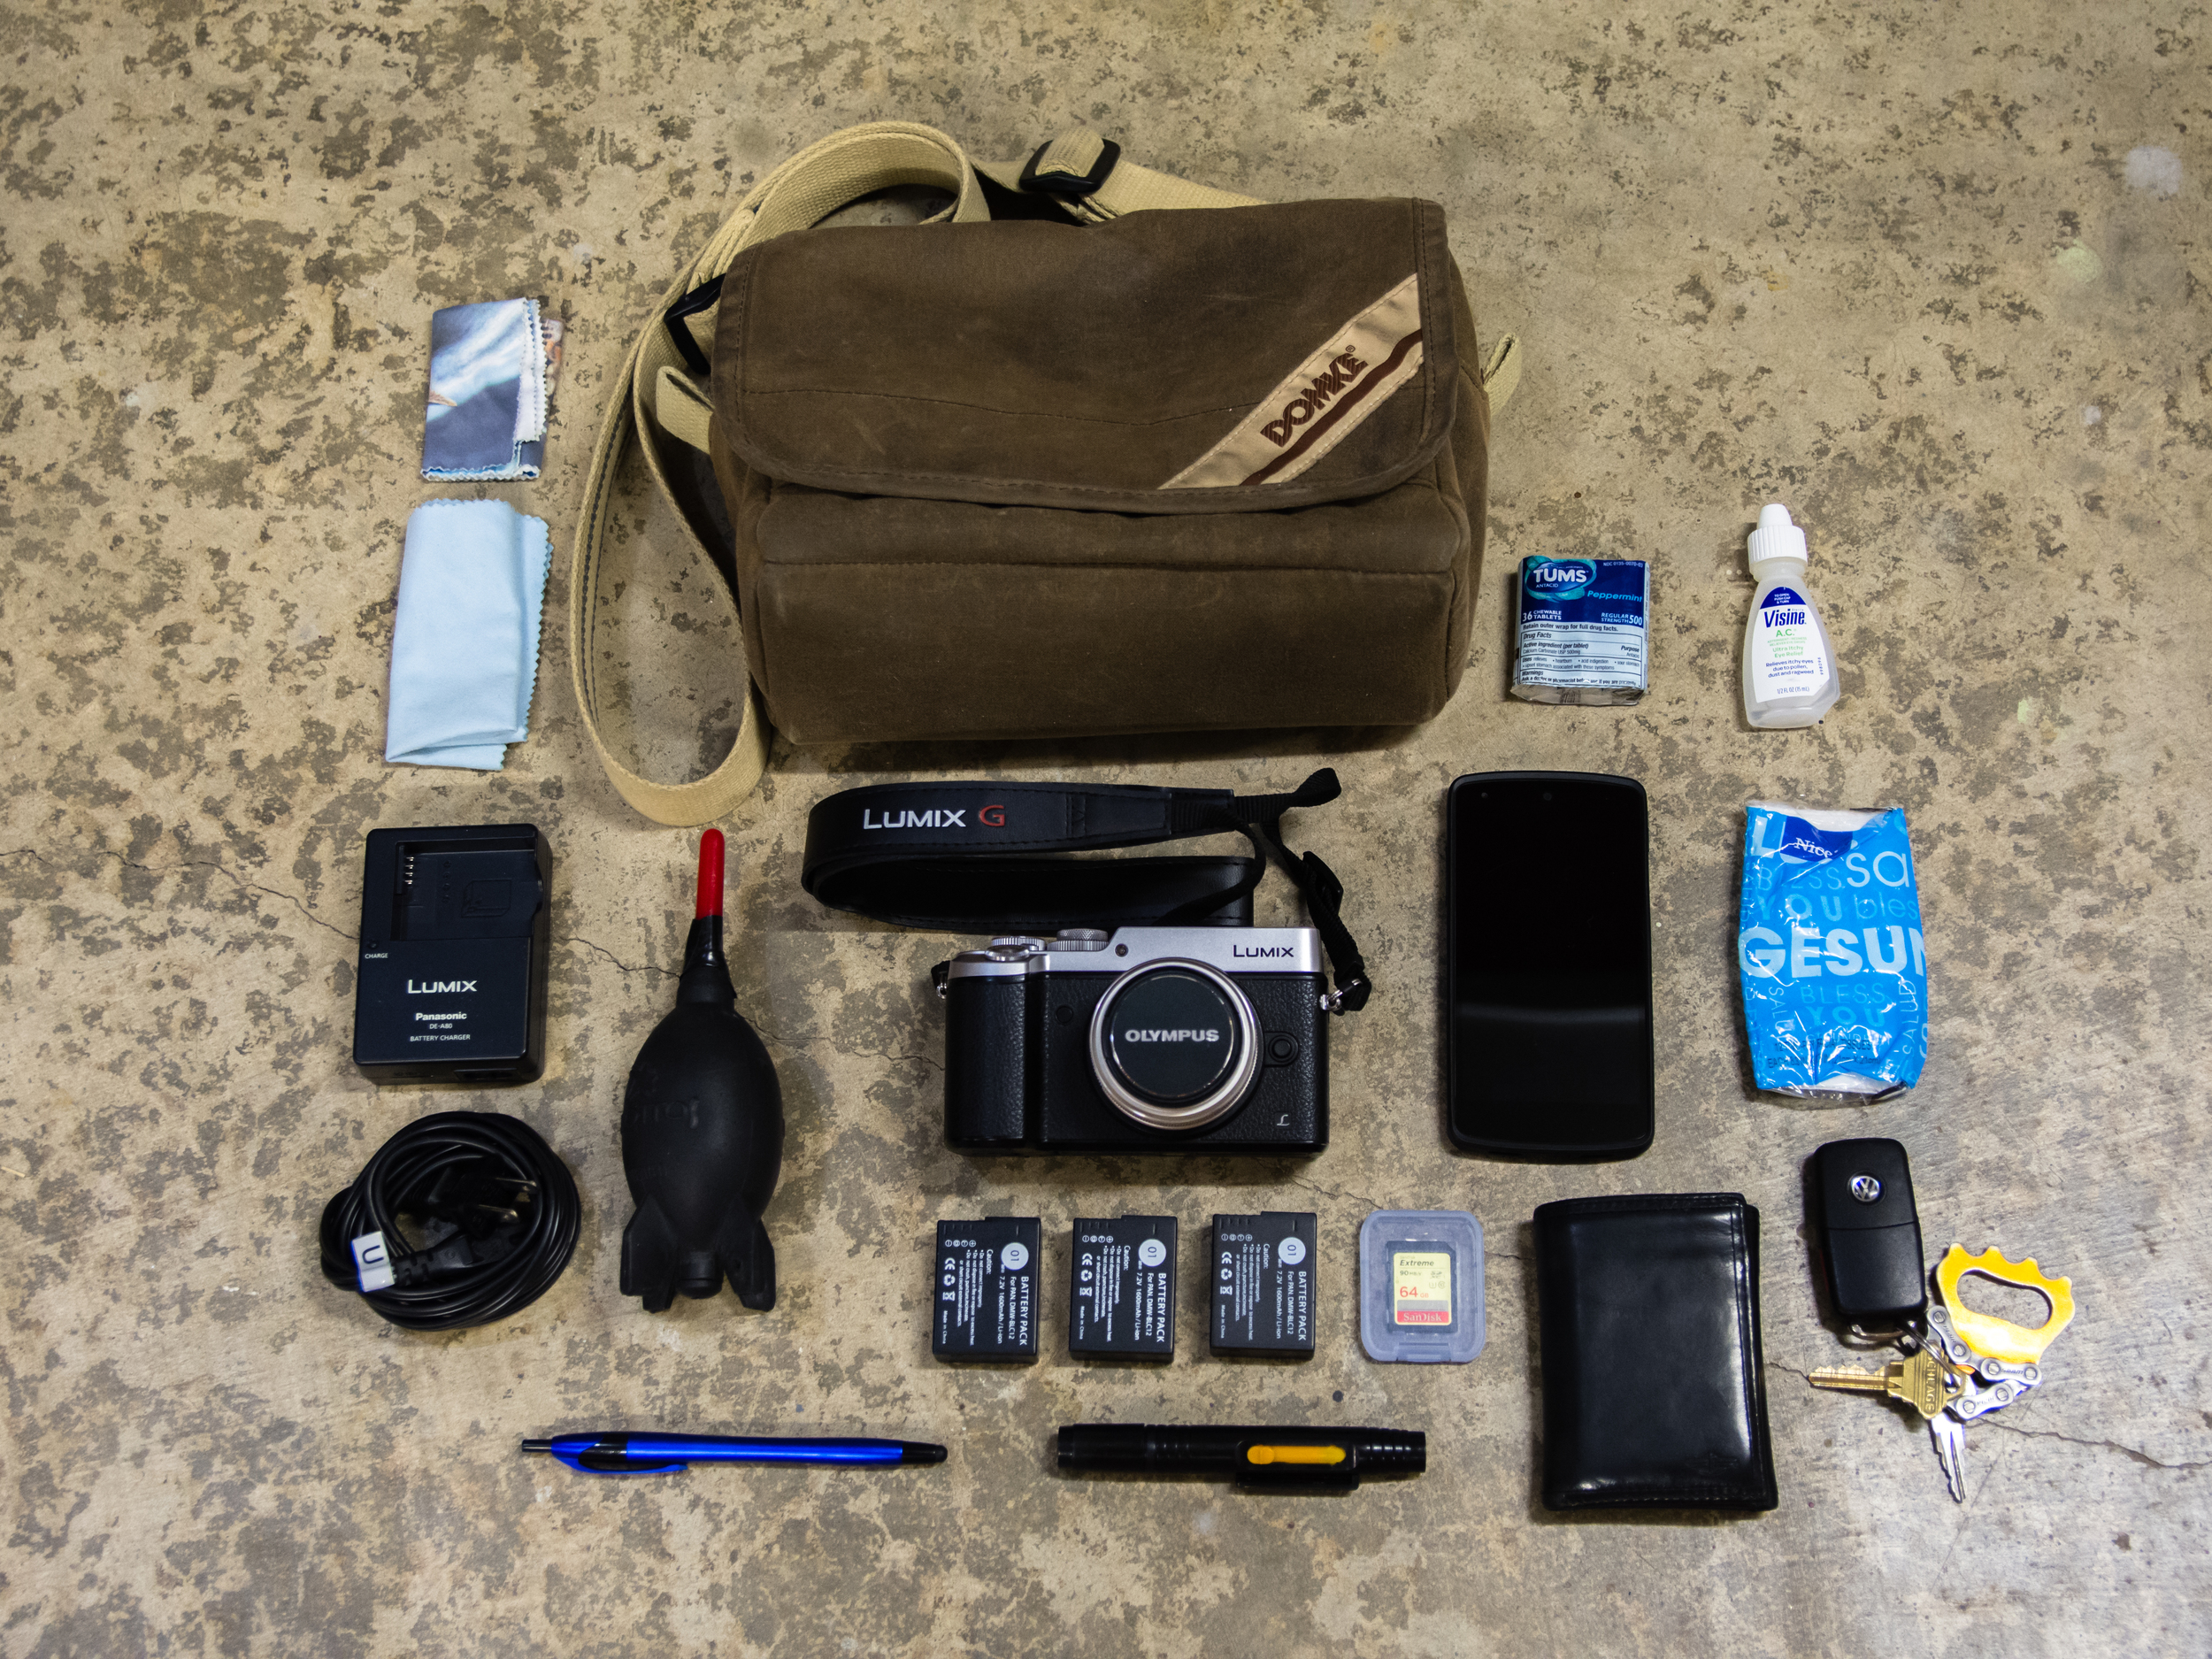 My daily camera kit